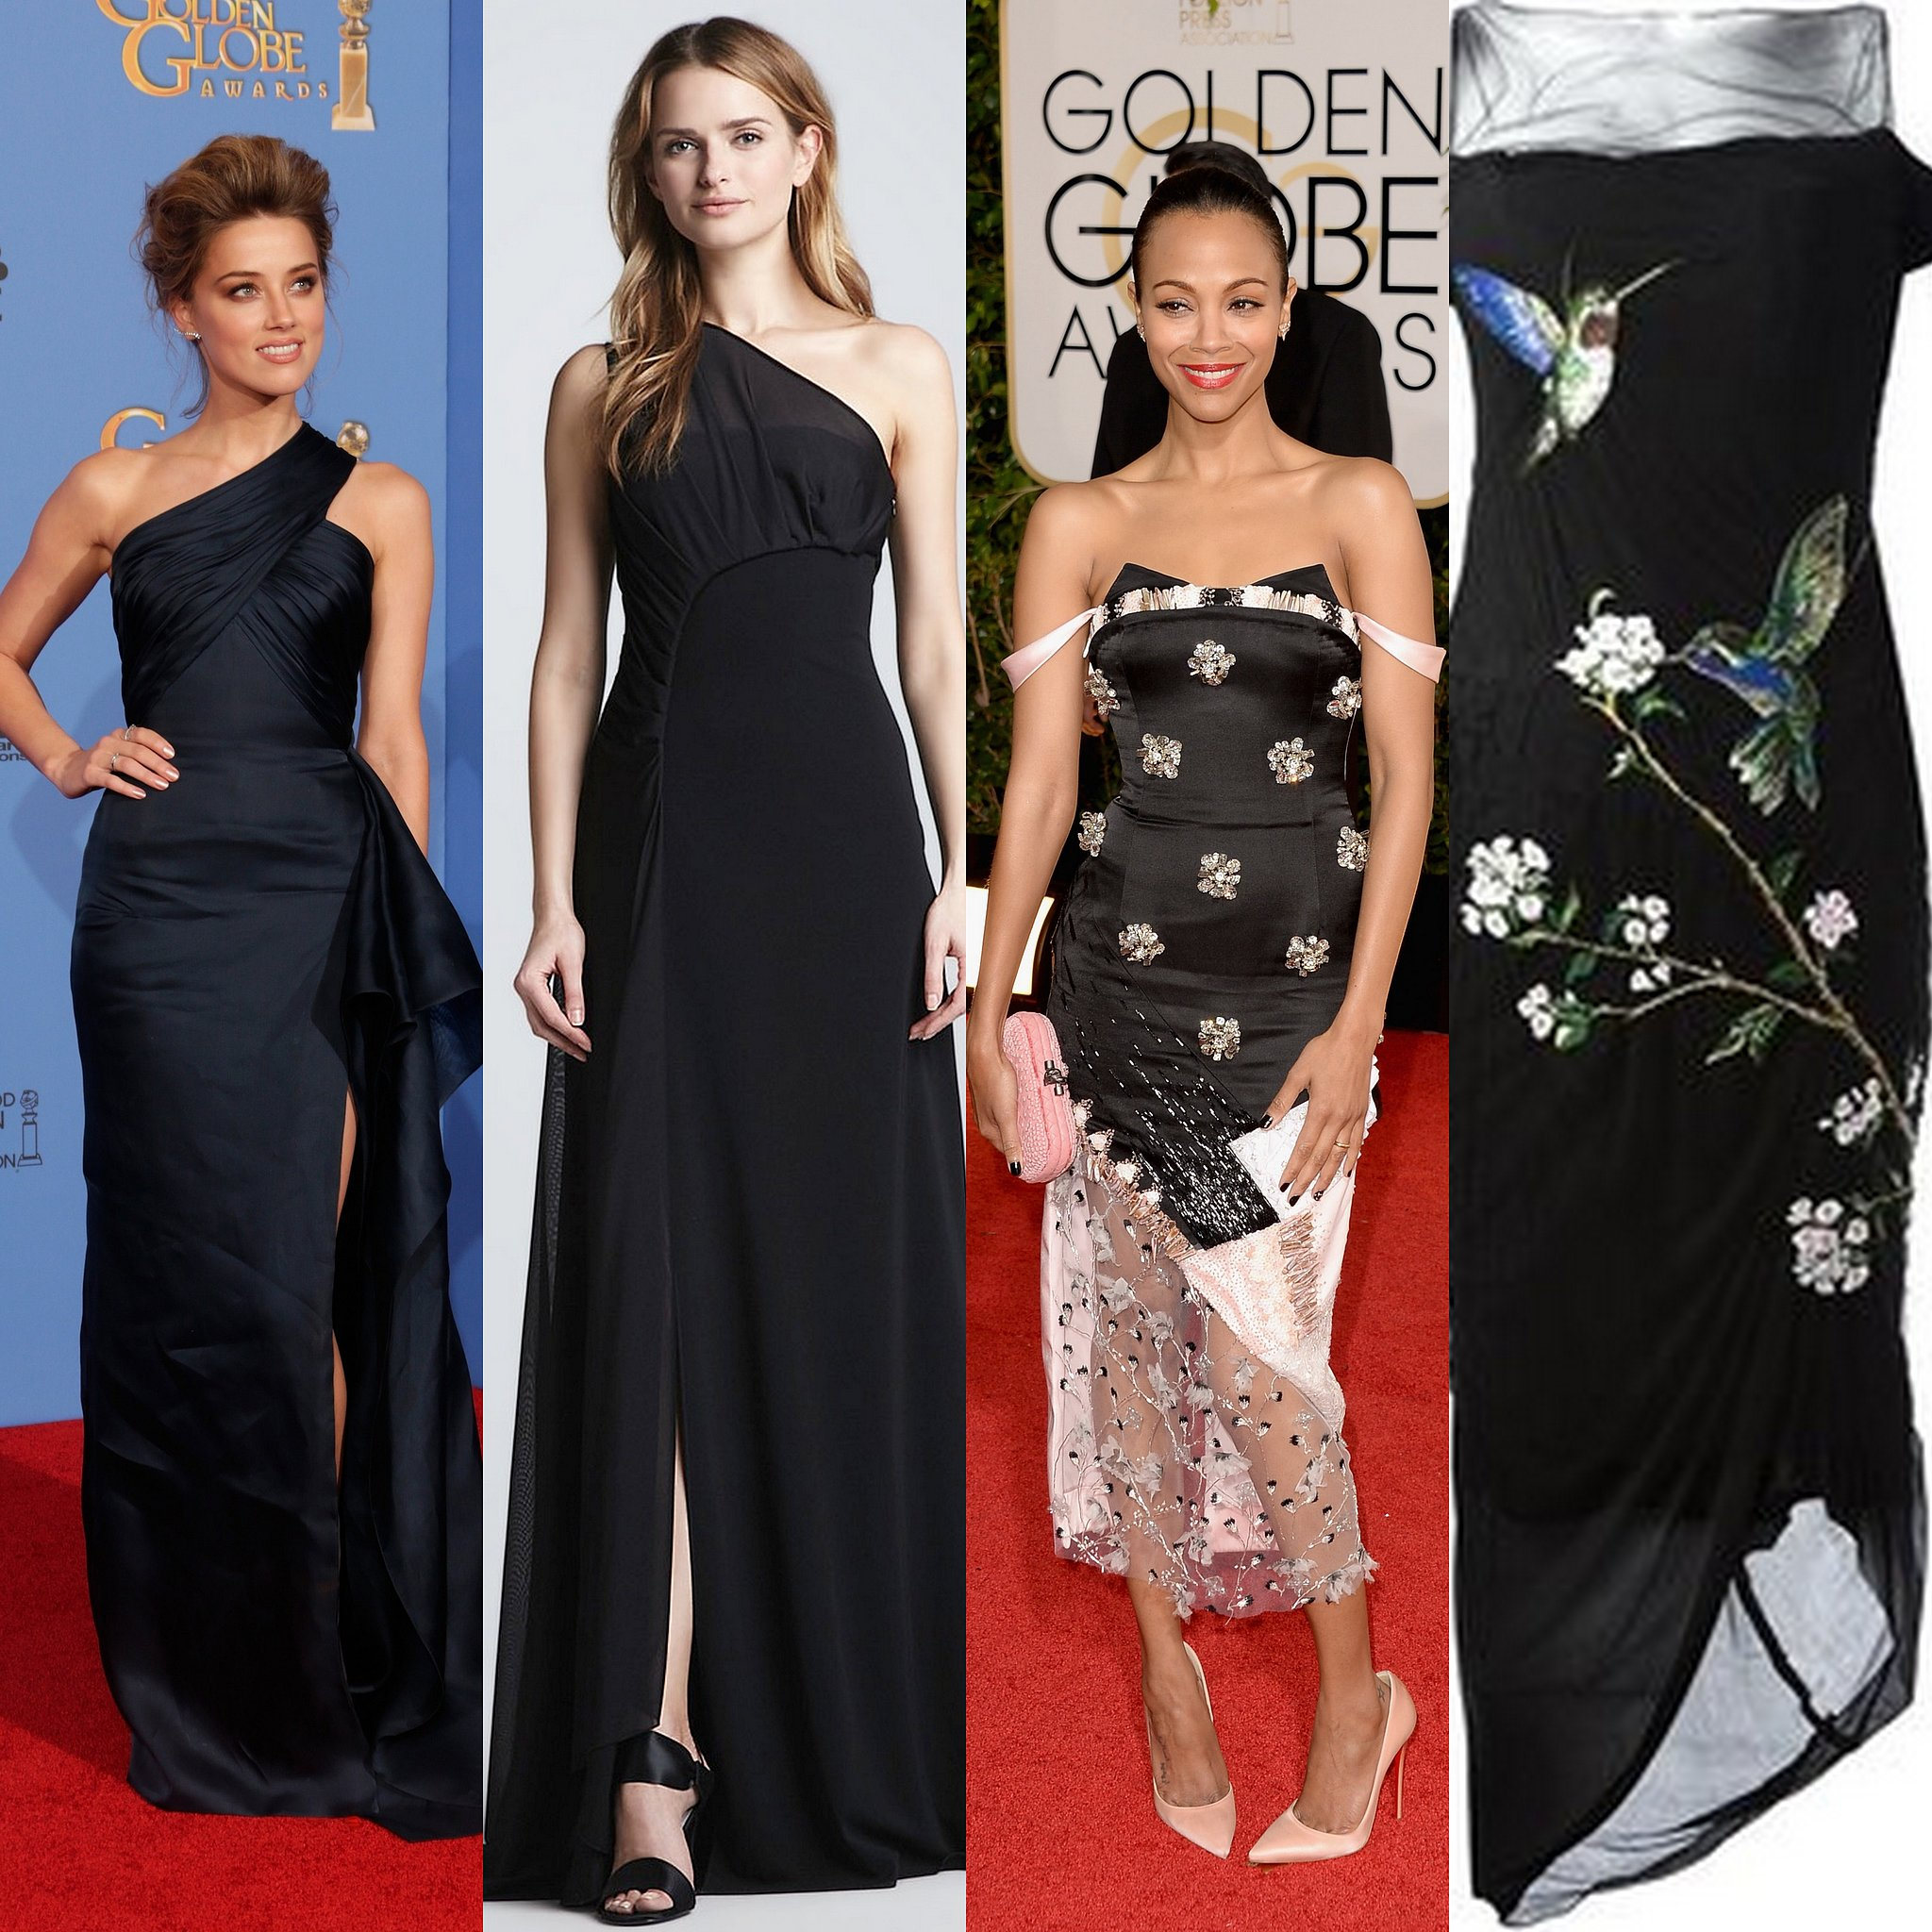 Amber Heard and Zoe Saldana both give us some good shoulder looks.